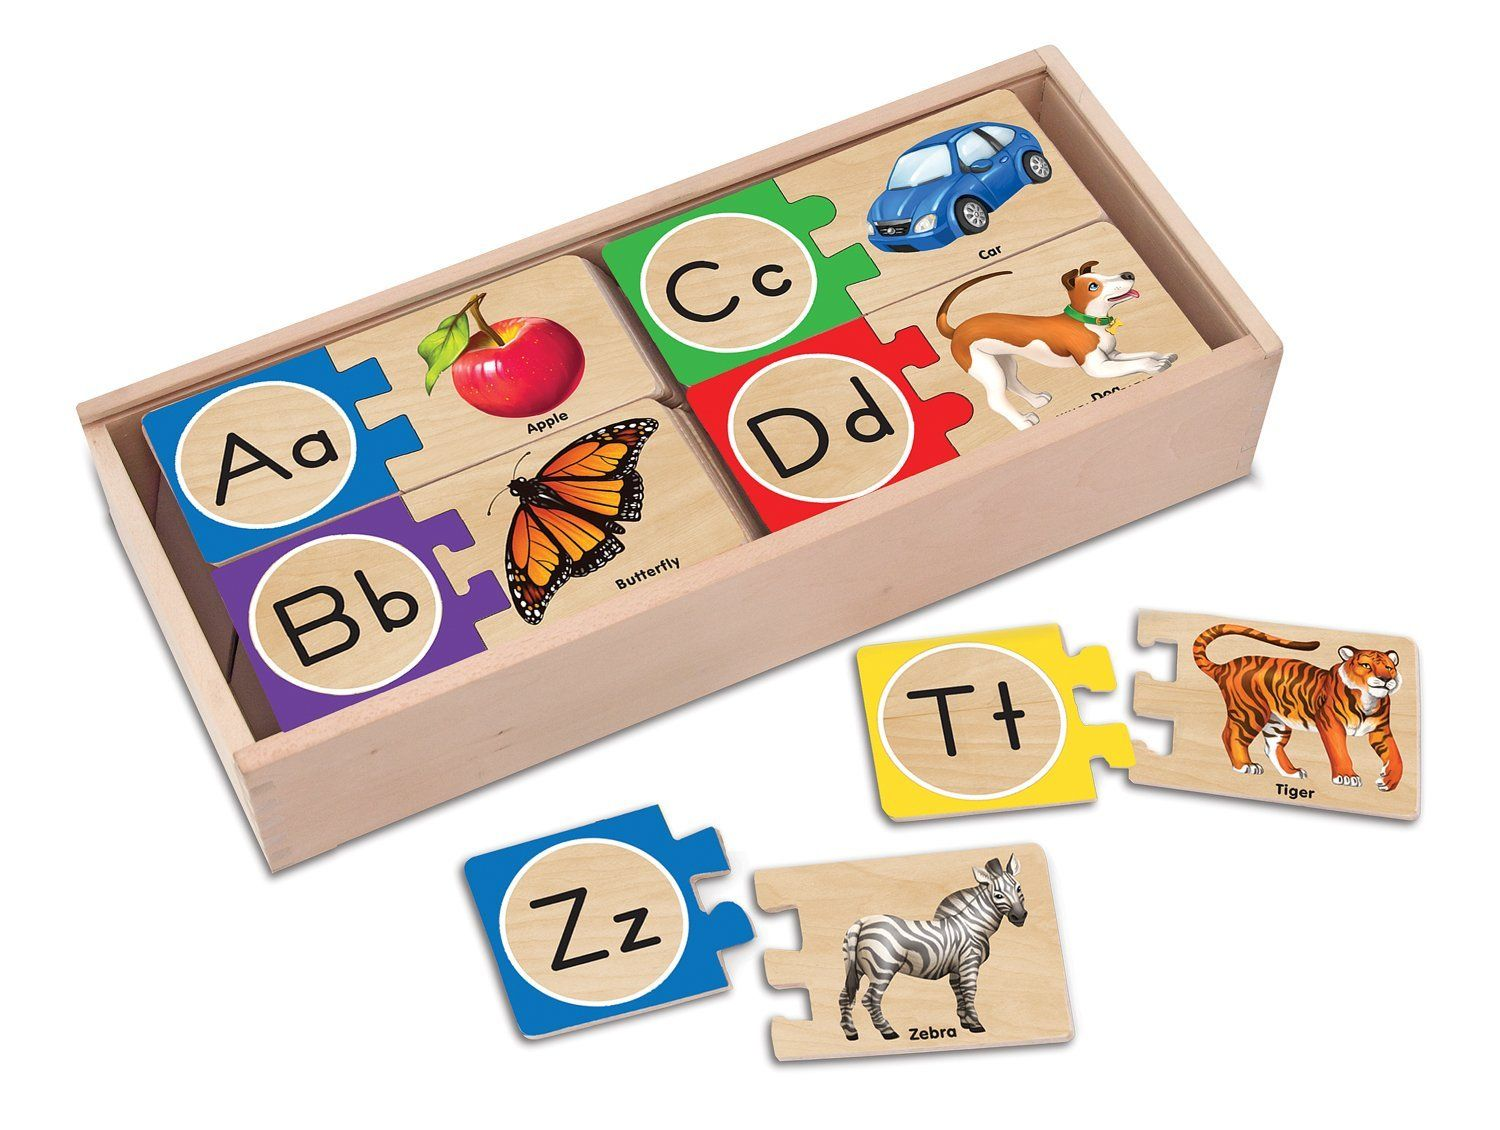 Qty: 1 Melissa & Doug Self-Correcting Letter Puzzles: Toys & Games ...